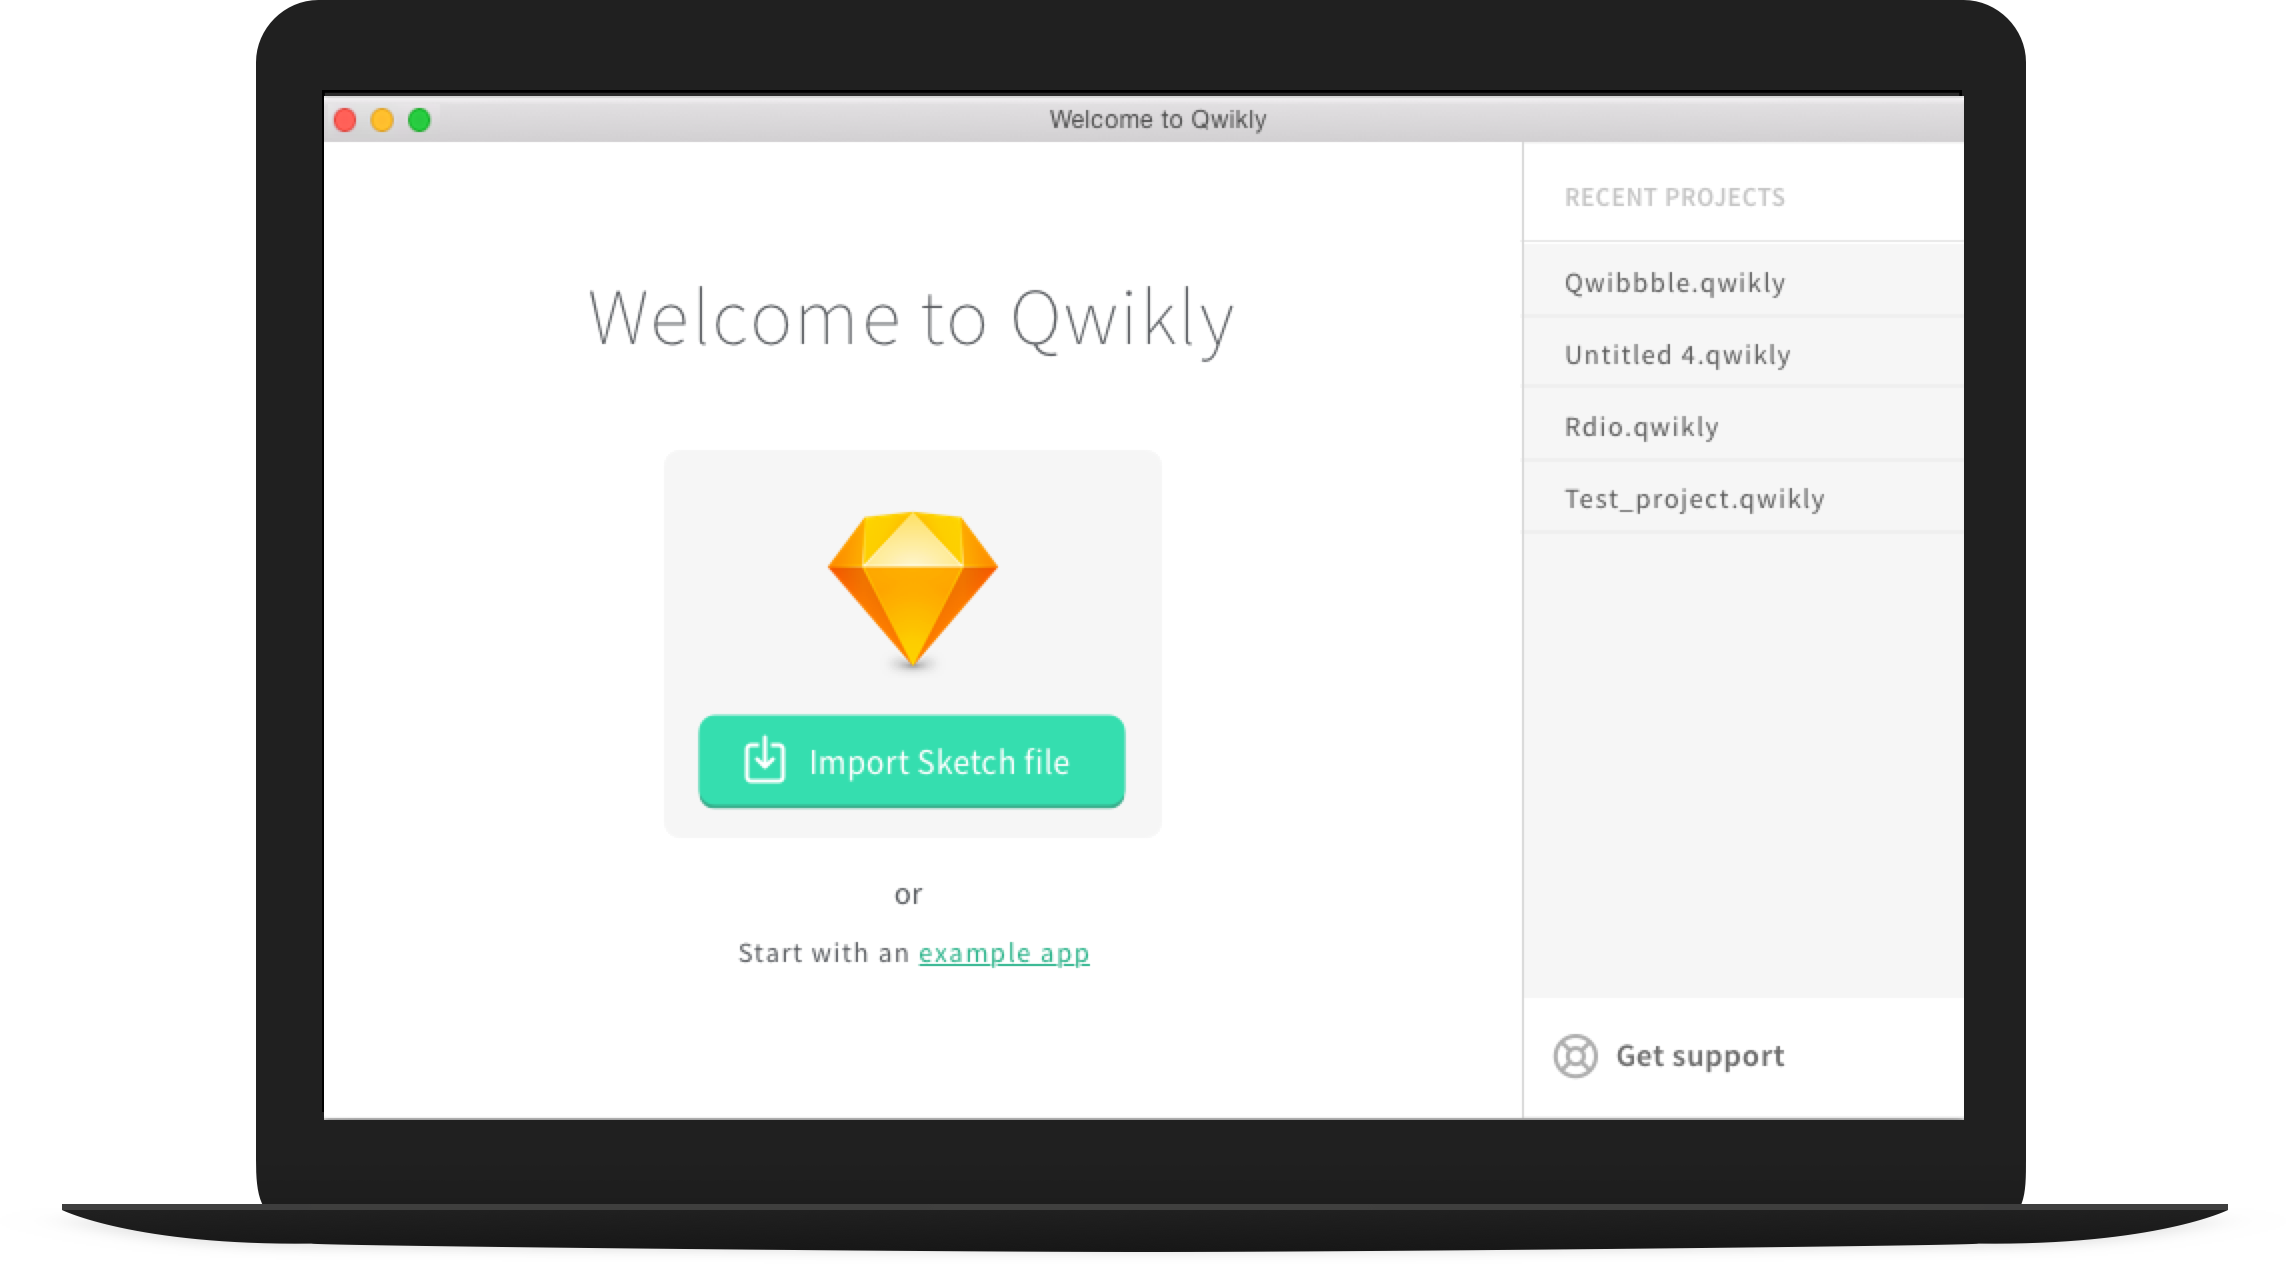 Welcome to Qwikly